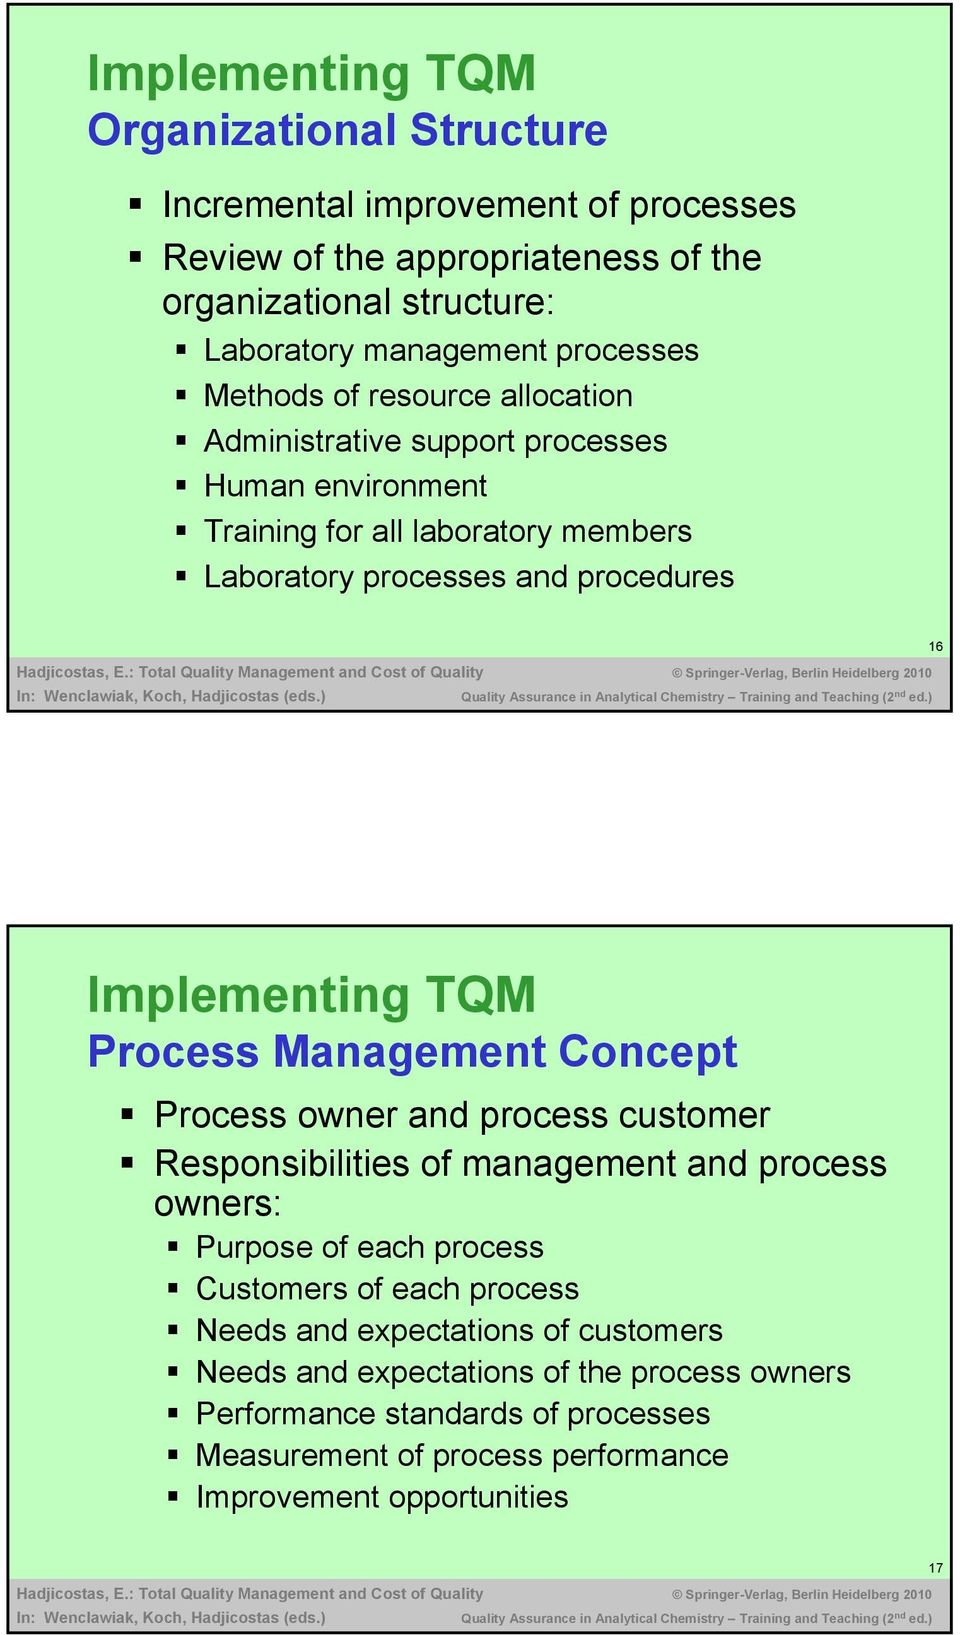 Implementing TQM Process Management Concept Process owner and process customer Responsibilities of management and process owners: Purpose of each process Customers of each